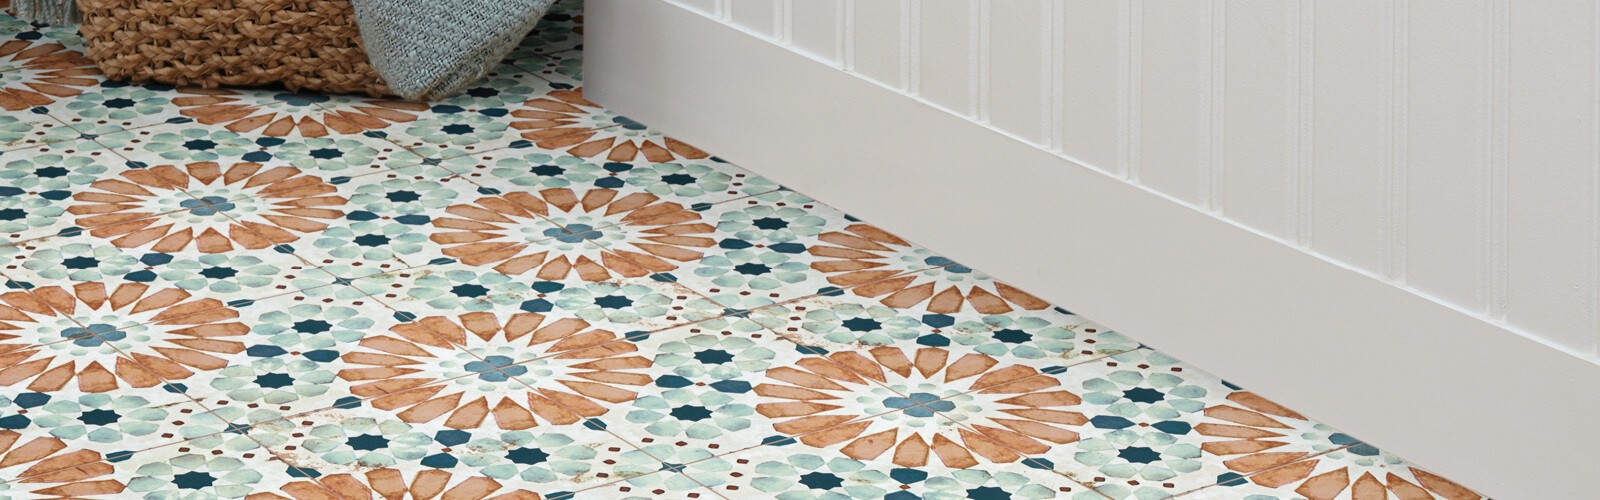 shaw floors tile flooring